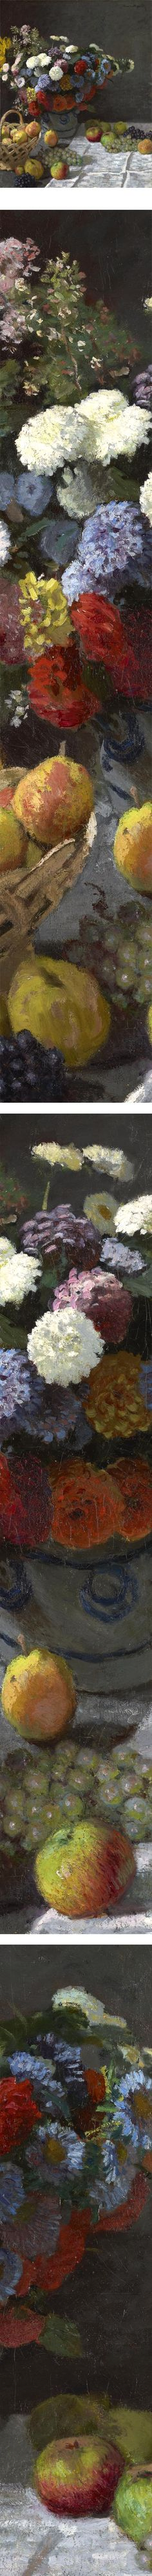 Still Life with Flowers and Fruit - Claude Monet